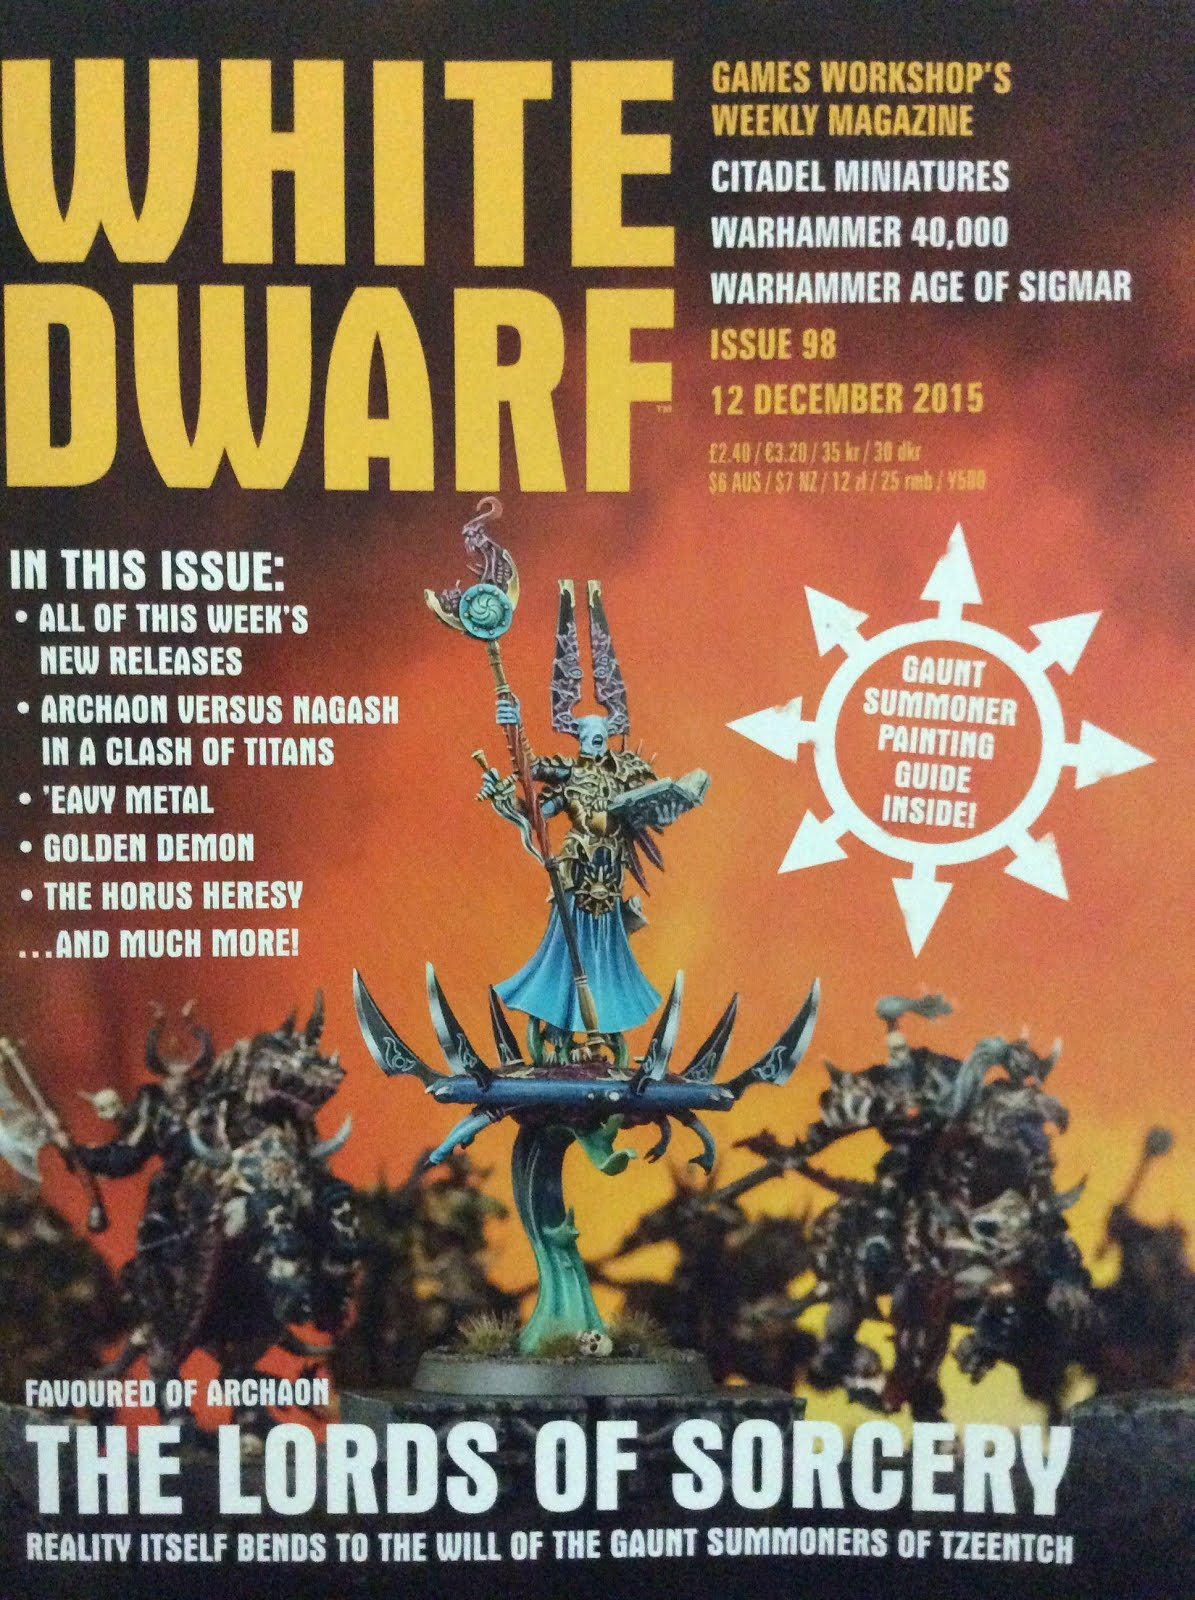 Portada del la White Dwarf 98 y el Lords of Sorcery